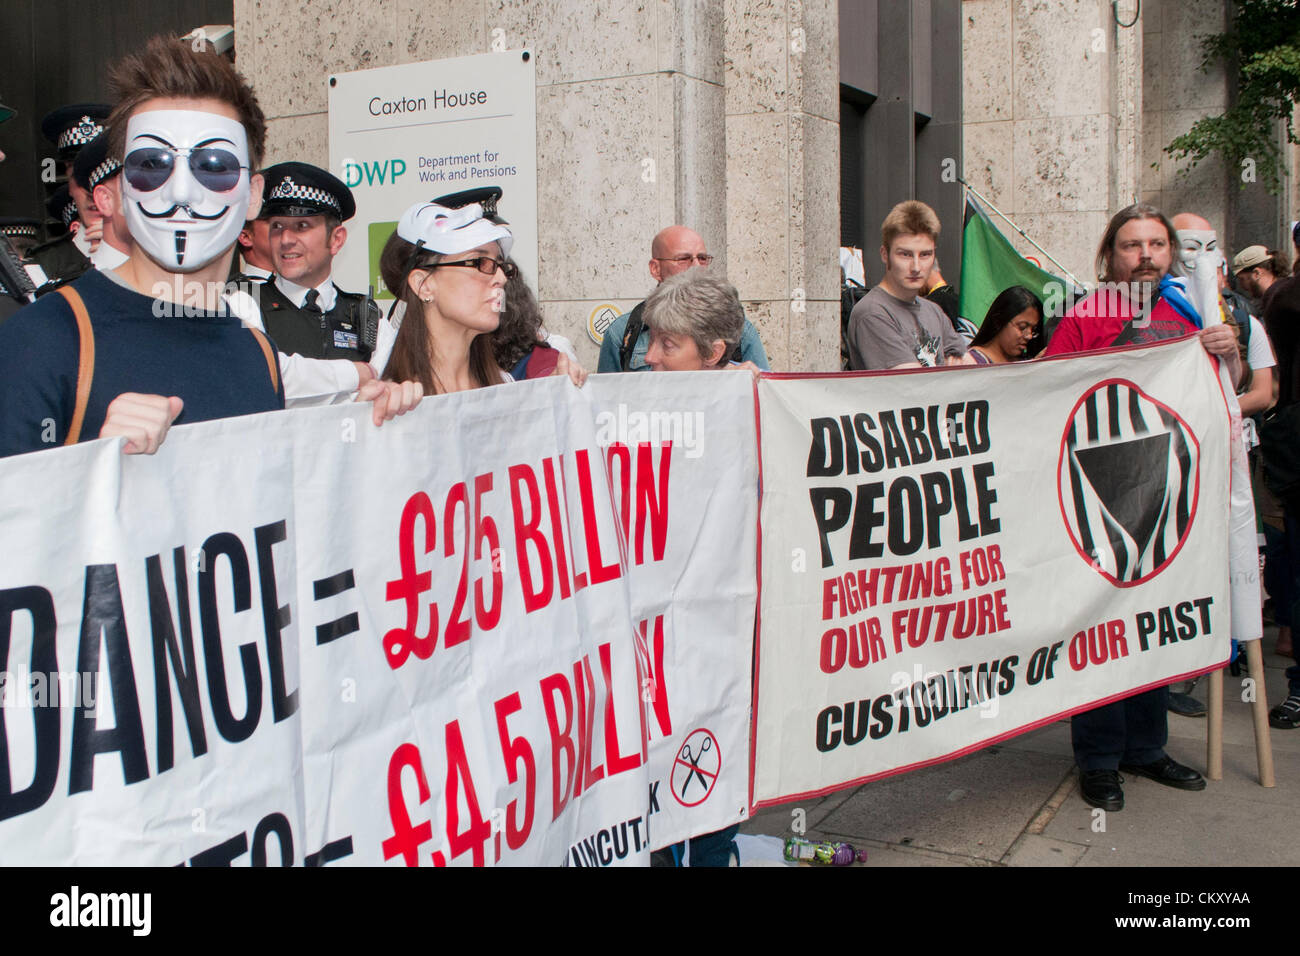 London, UK. 31st Aug 2012. Disabled people protesting against the Department of Work and Pension's use of Atos, - Stock Image